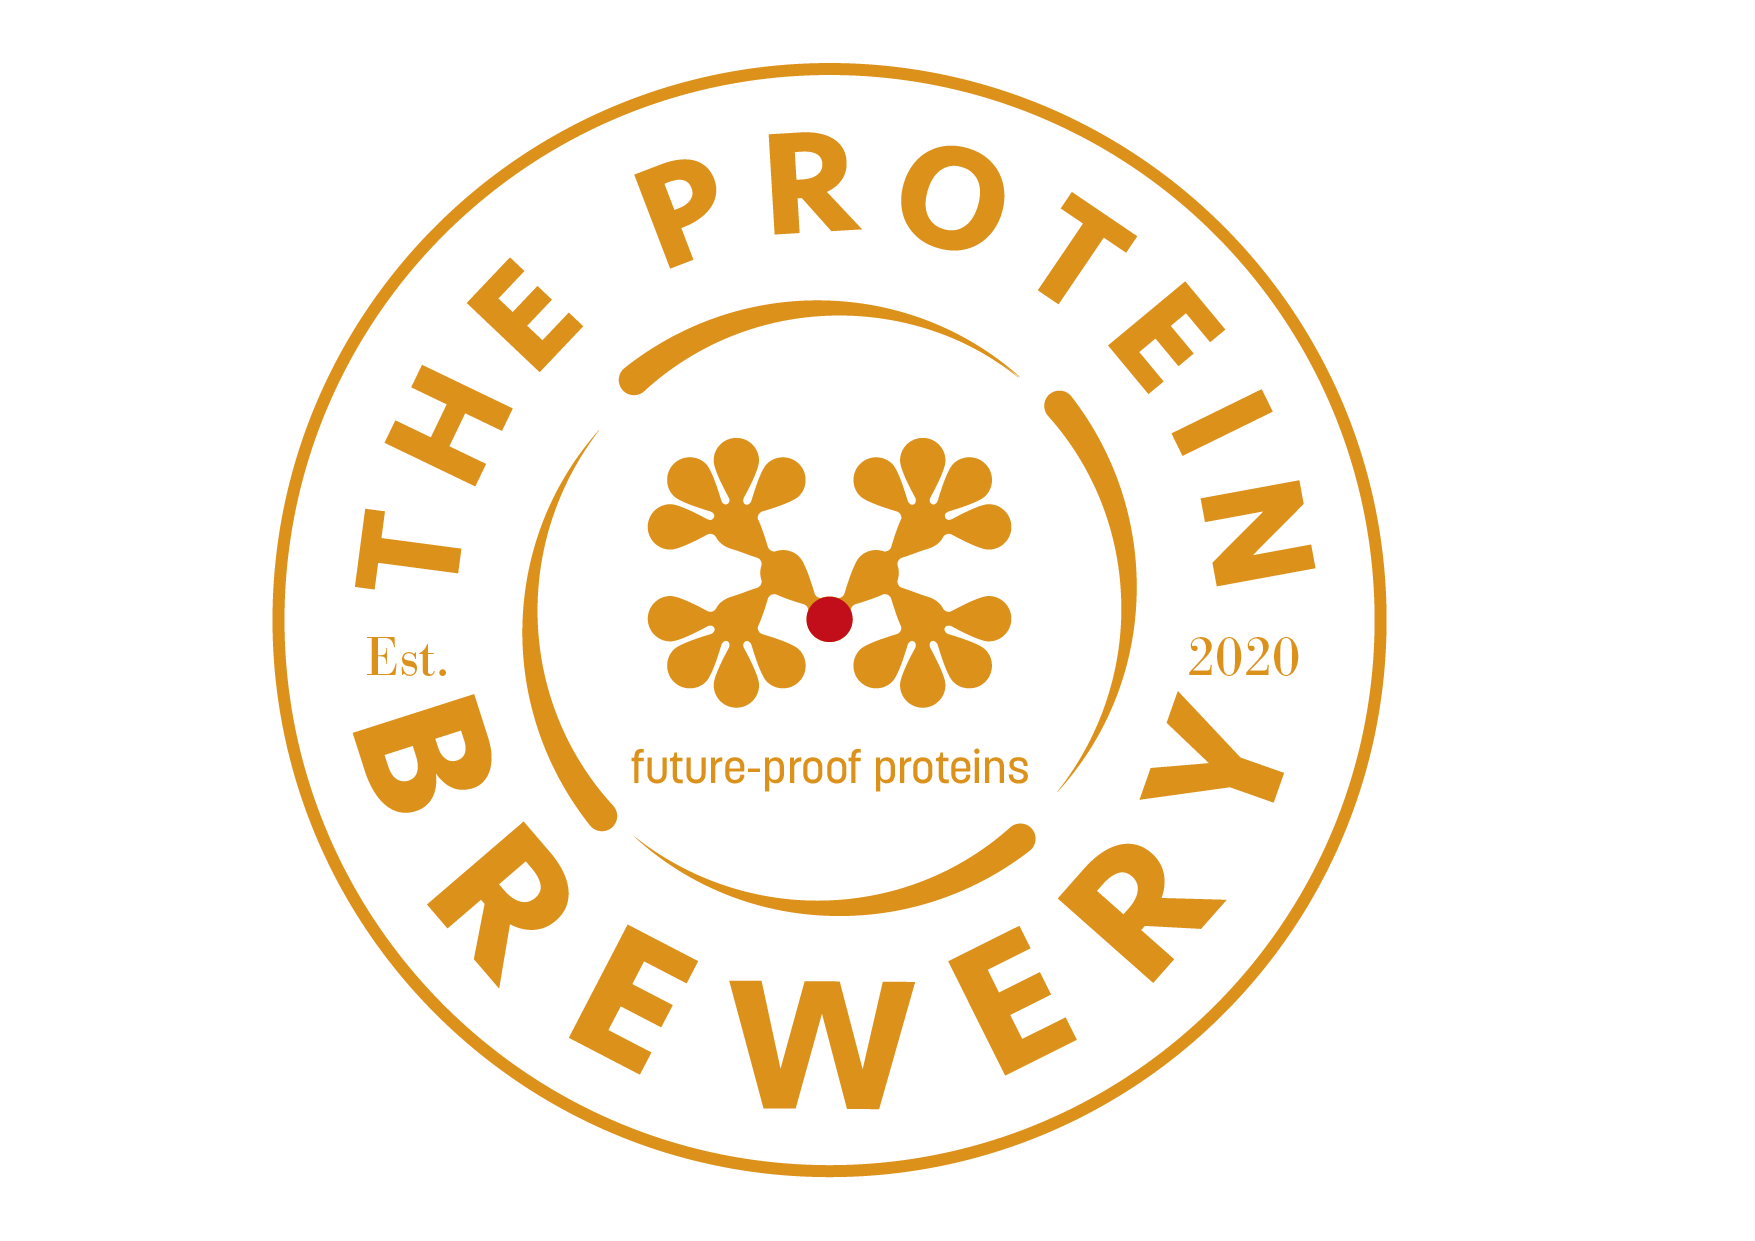 The Protein Brewery logo